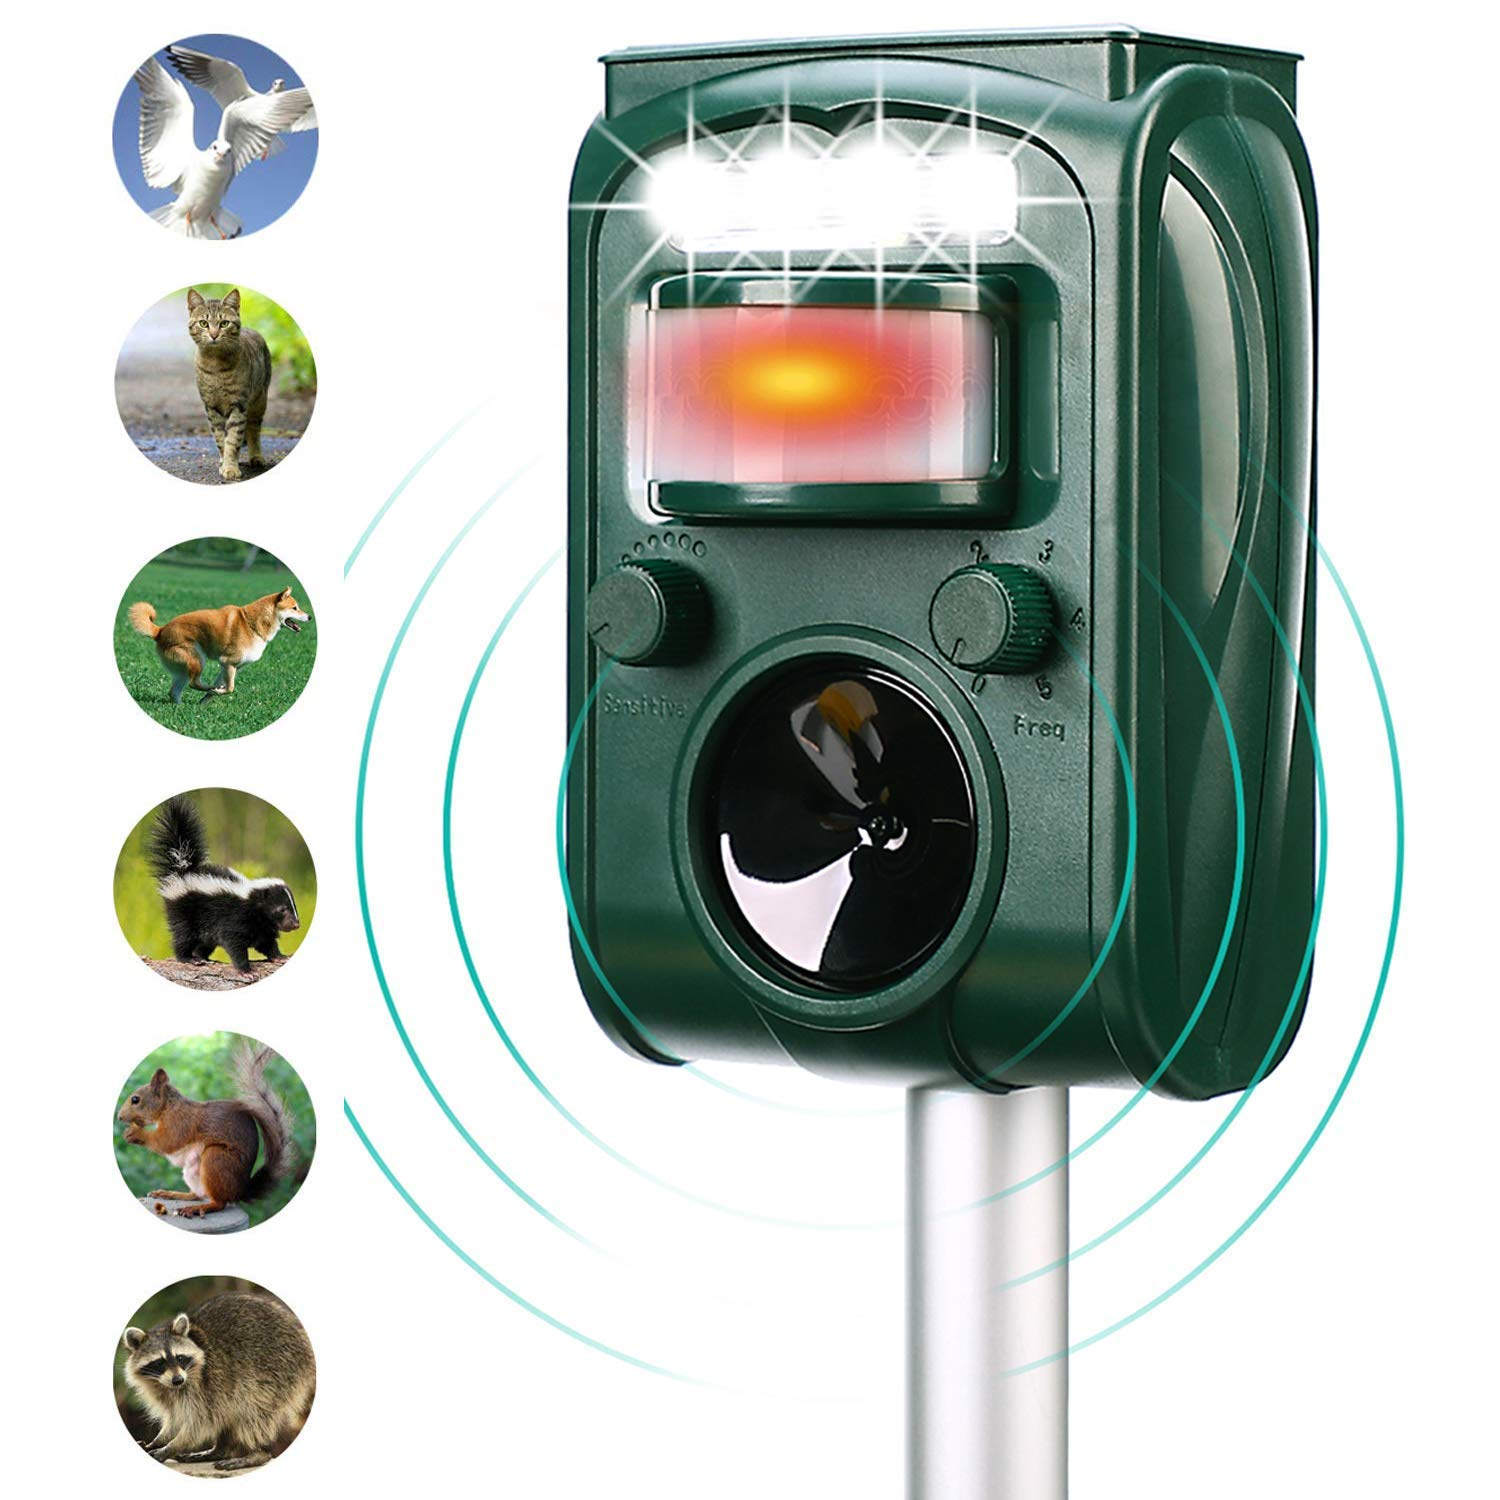 SONYANG Ultrasonic Animal Repeller, Solar Powered Waterproof Outdoor Repellent with Motion Sensor and Flashing Light for Raccoons, Cats, Dogs, Squirrels, Moles, Rabbits, Birds, Skunks, Foxes product image